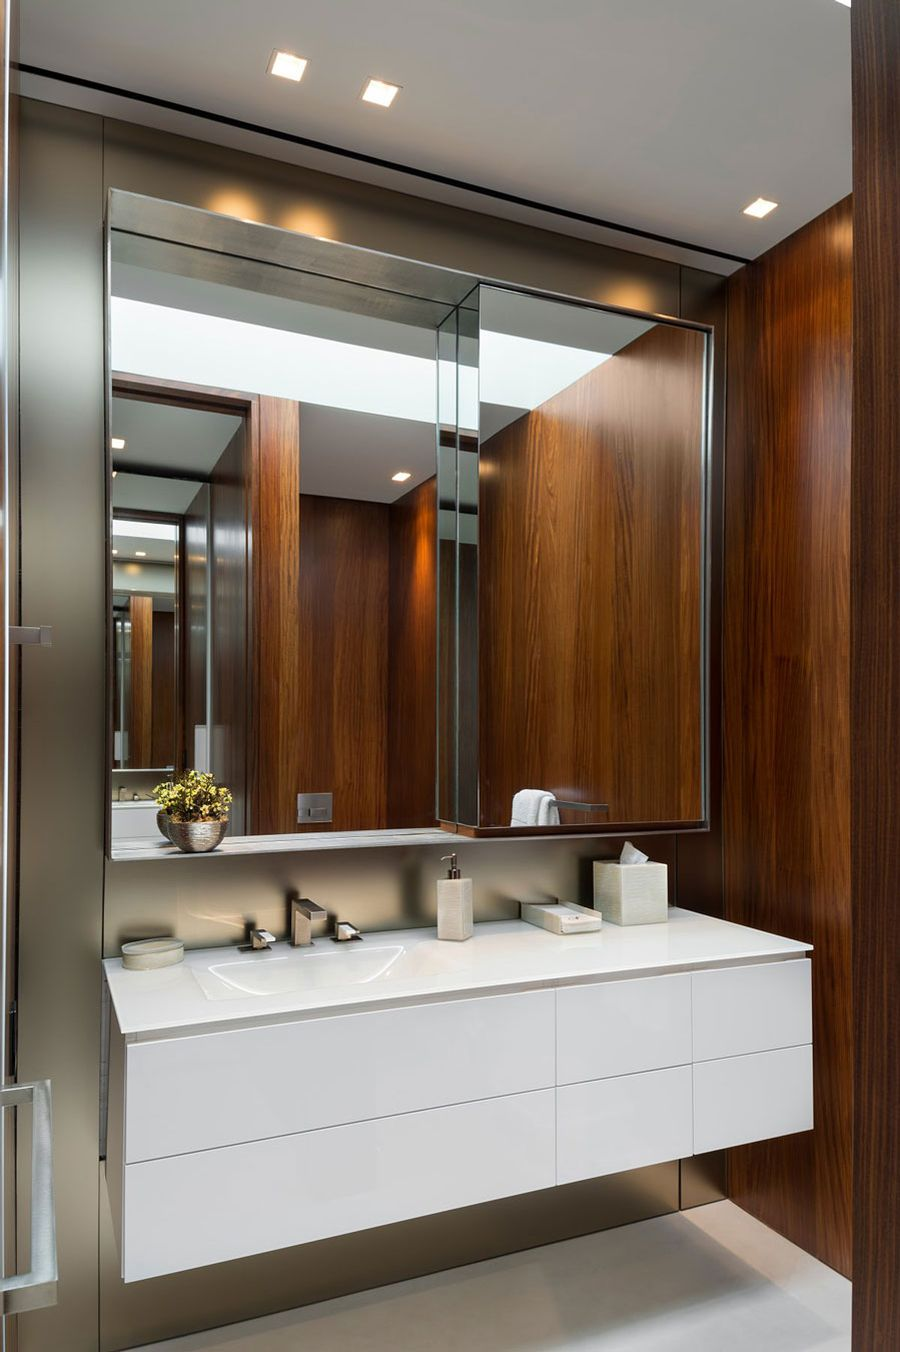 Floating cabinet in the bathroom